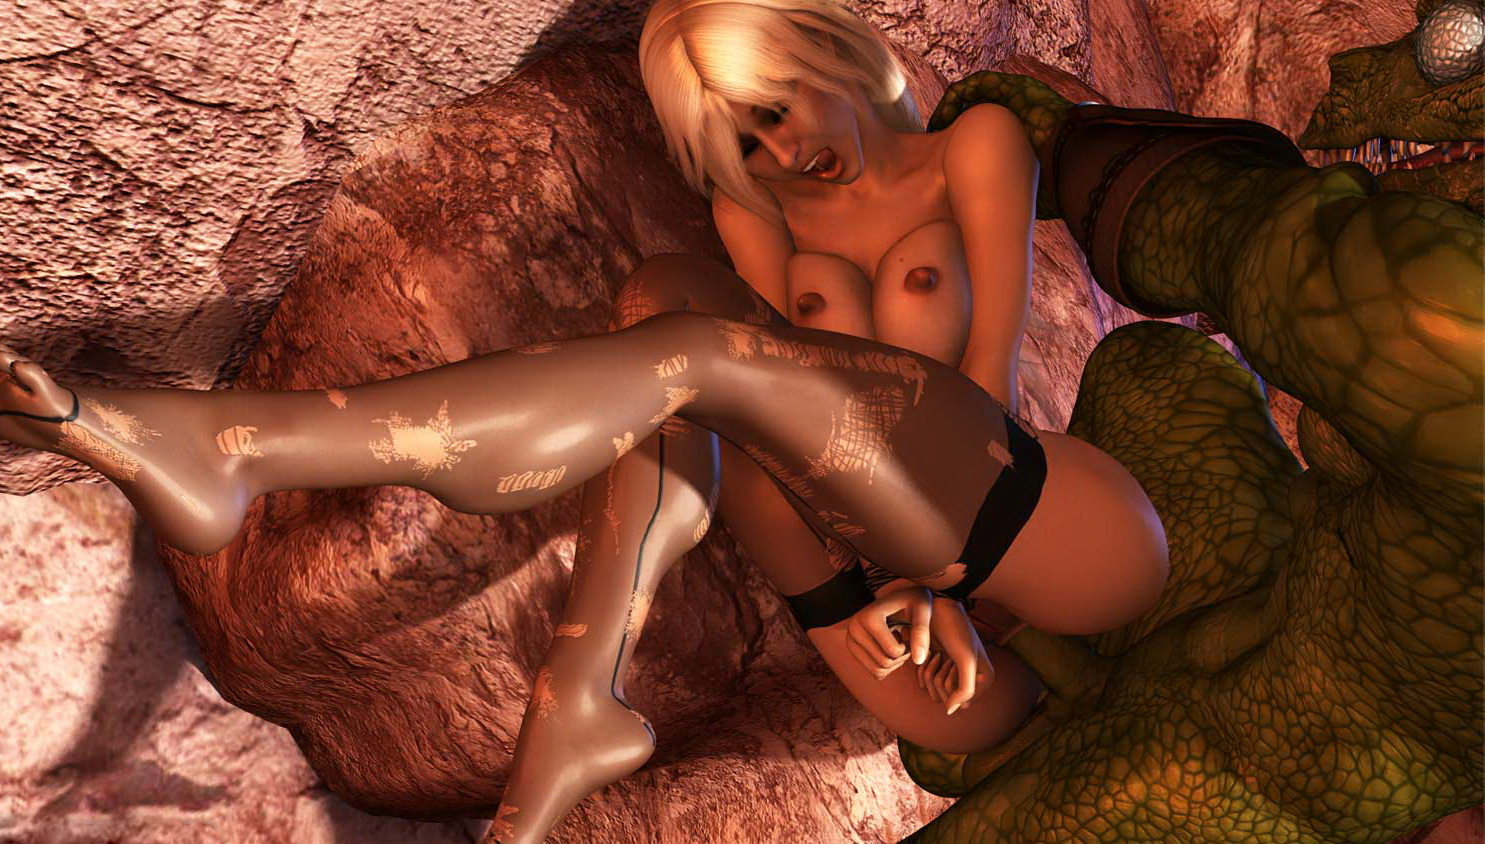 Gallery 3d images female sex woman pirates hentai toons